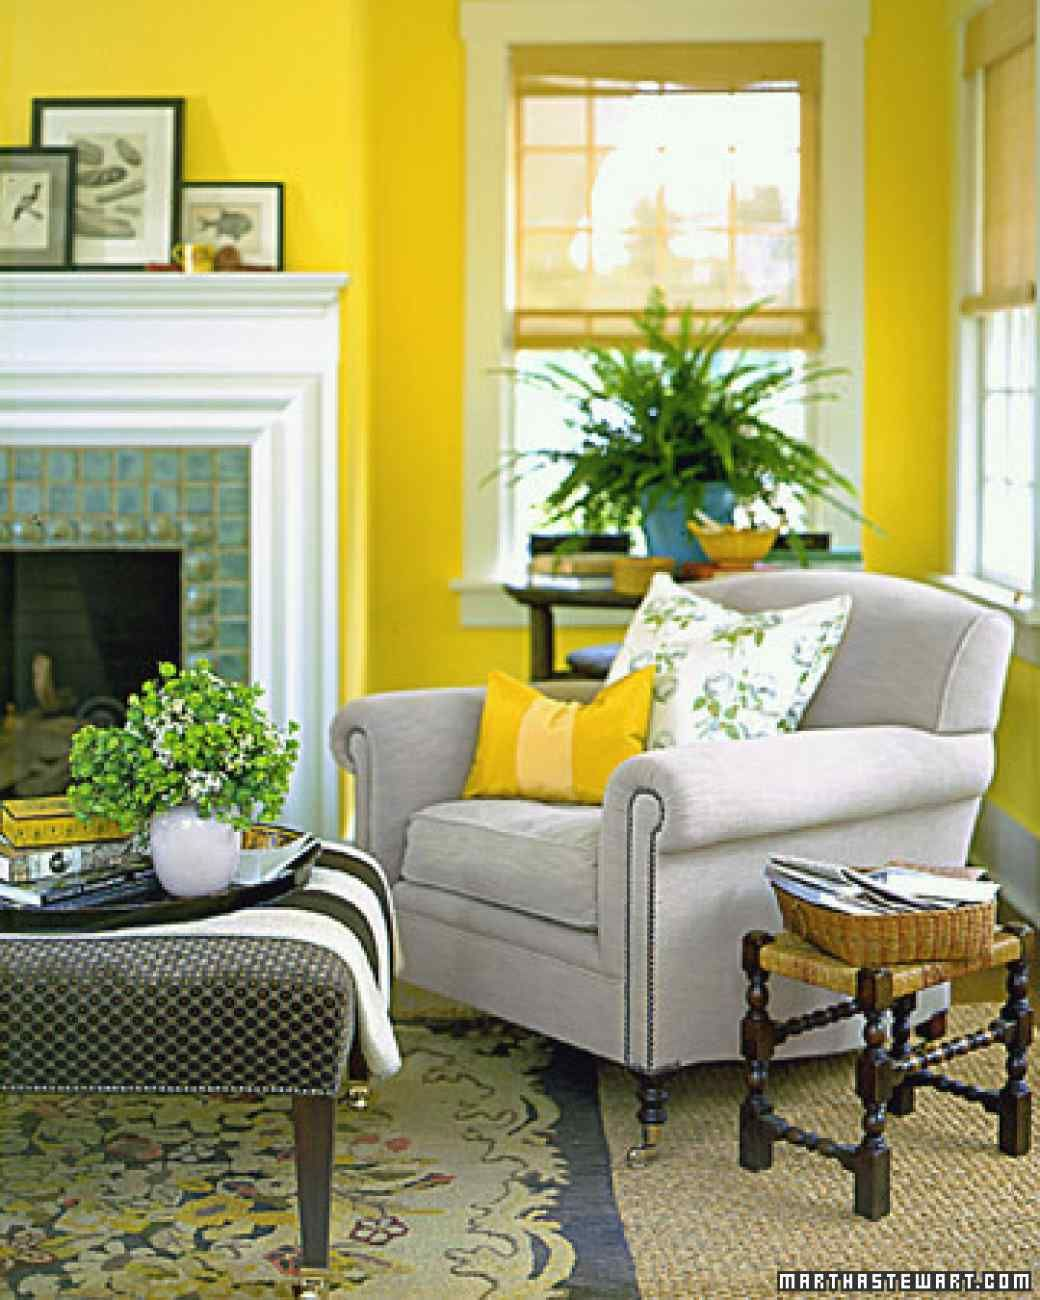 From butter to lemon to dandelion yellow, browse through our gallery of yellow rooms to see how lovely the color can be.